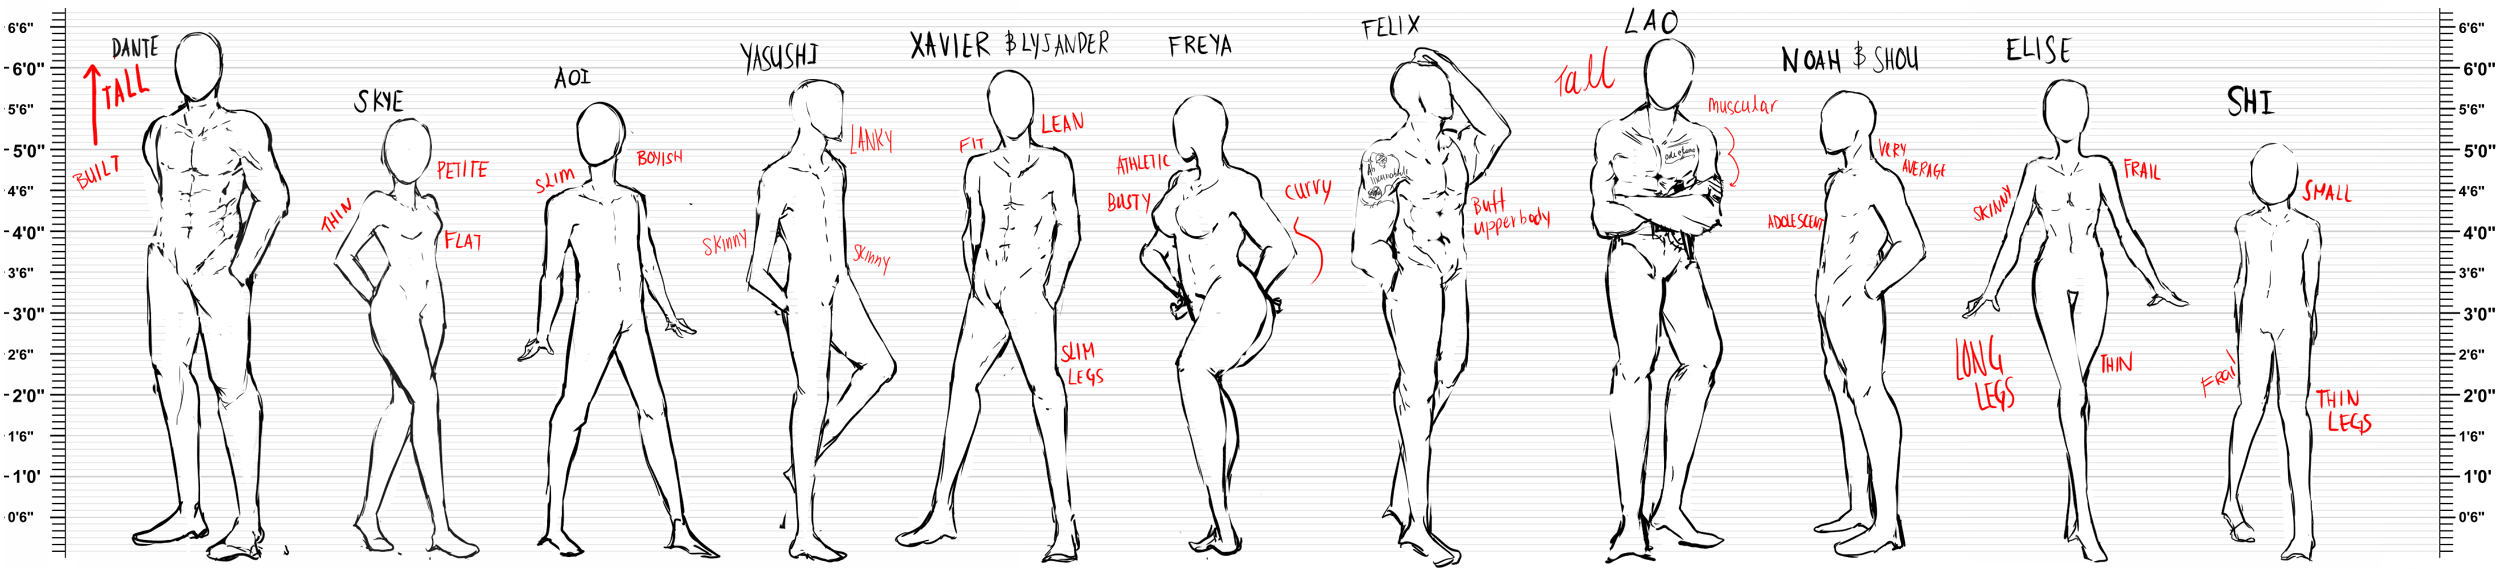 Body Type And Height Reference By Calvariae On Deviantart